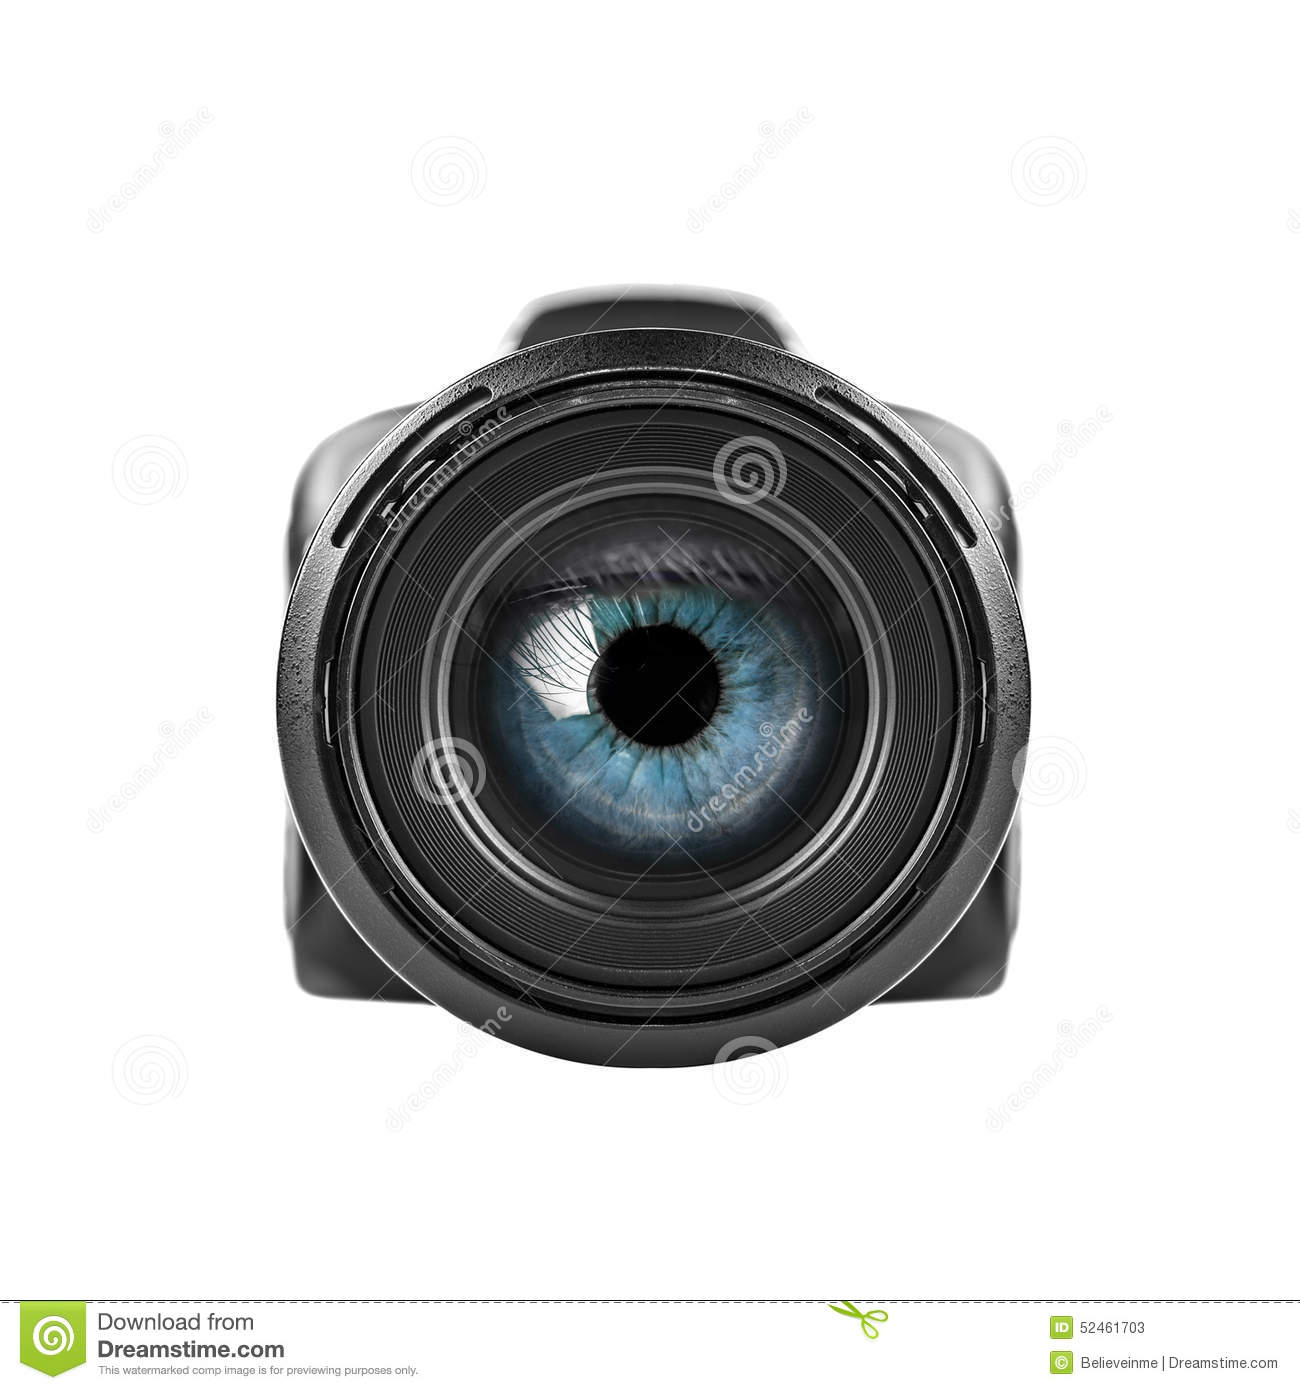 Blue Eye Looking Through A Digital Camera Lens Stock Photo ...